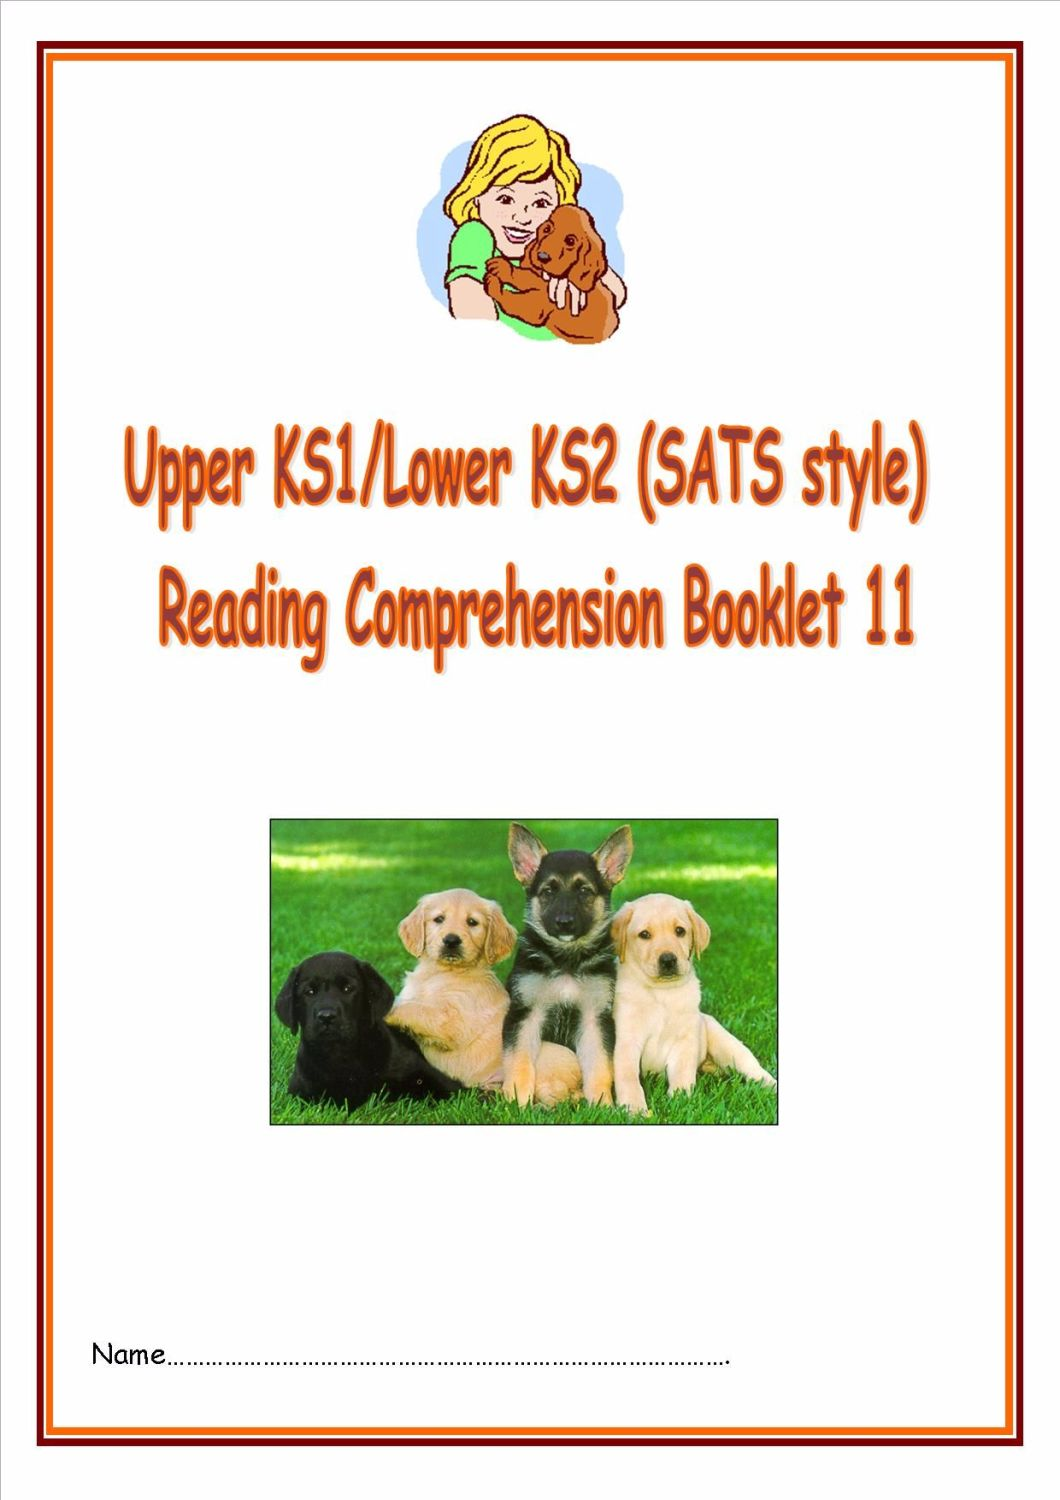 KS1/LKS2 SATs style reading comprehension booklet based on Dogs.  Designed